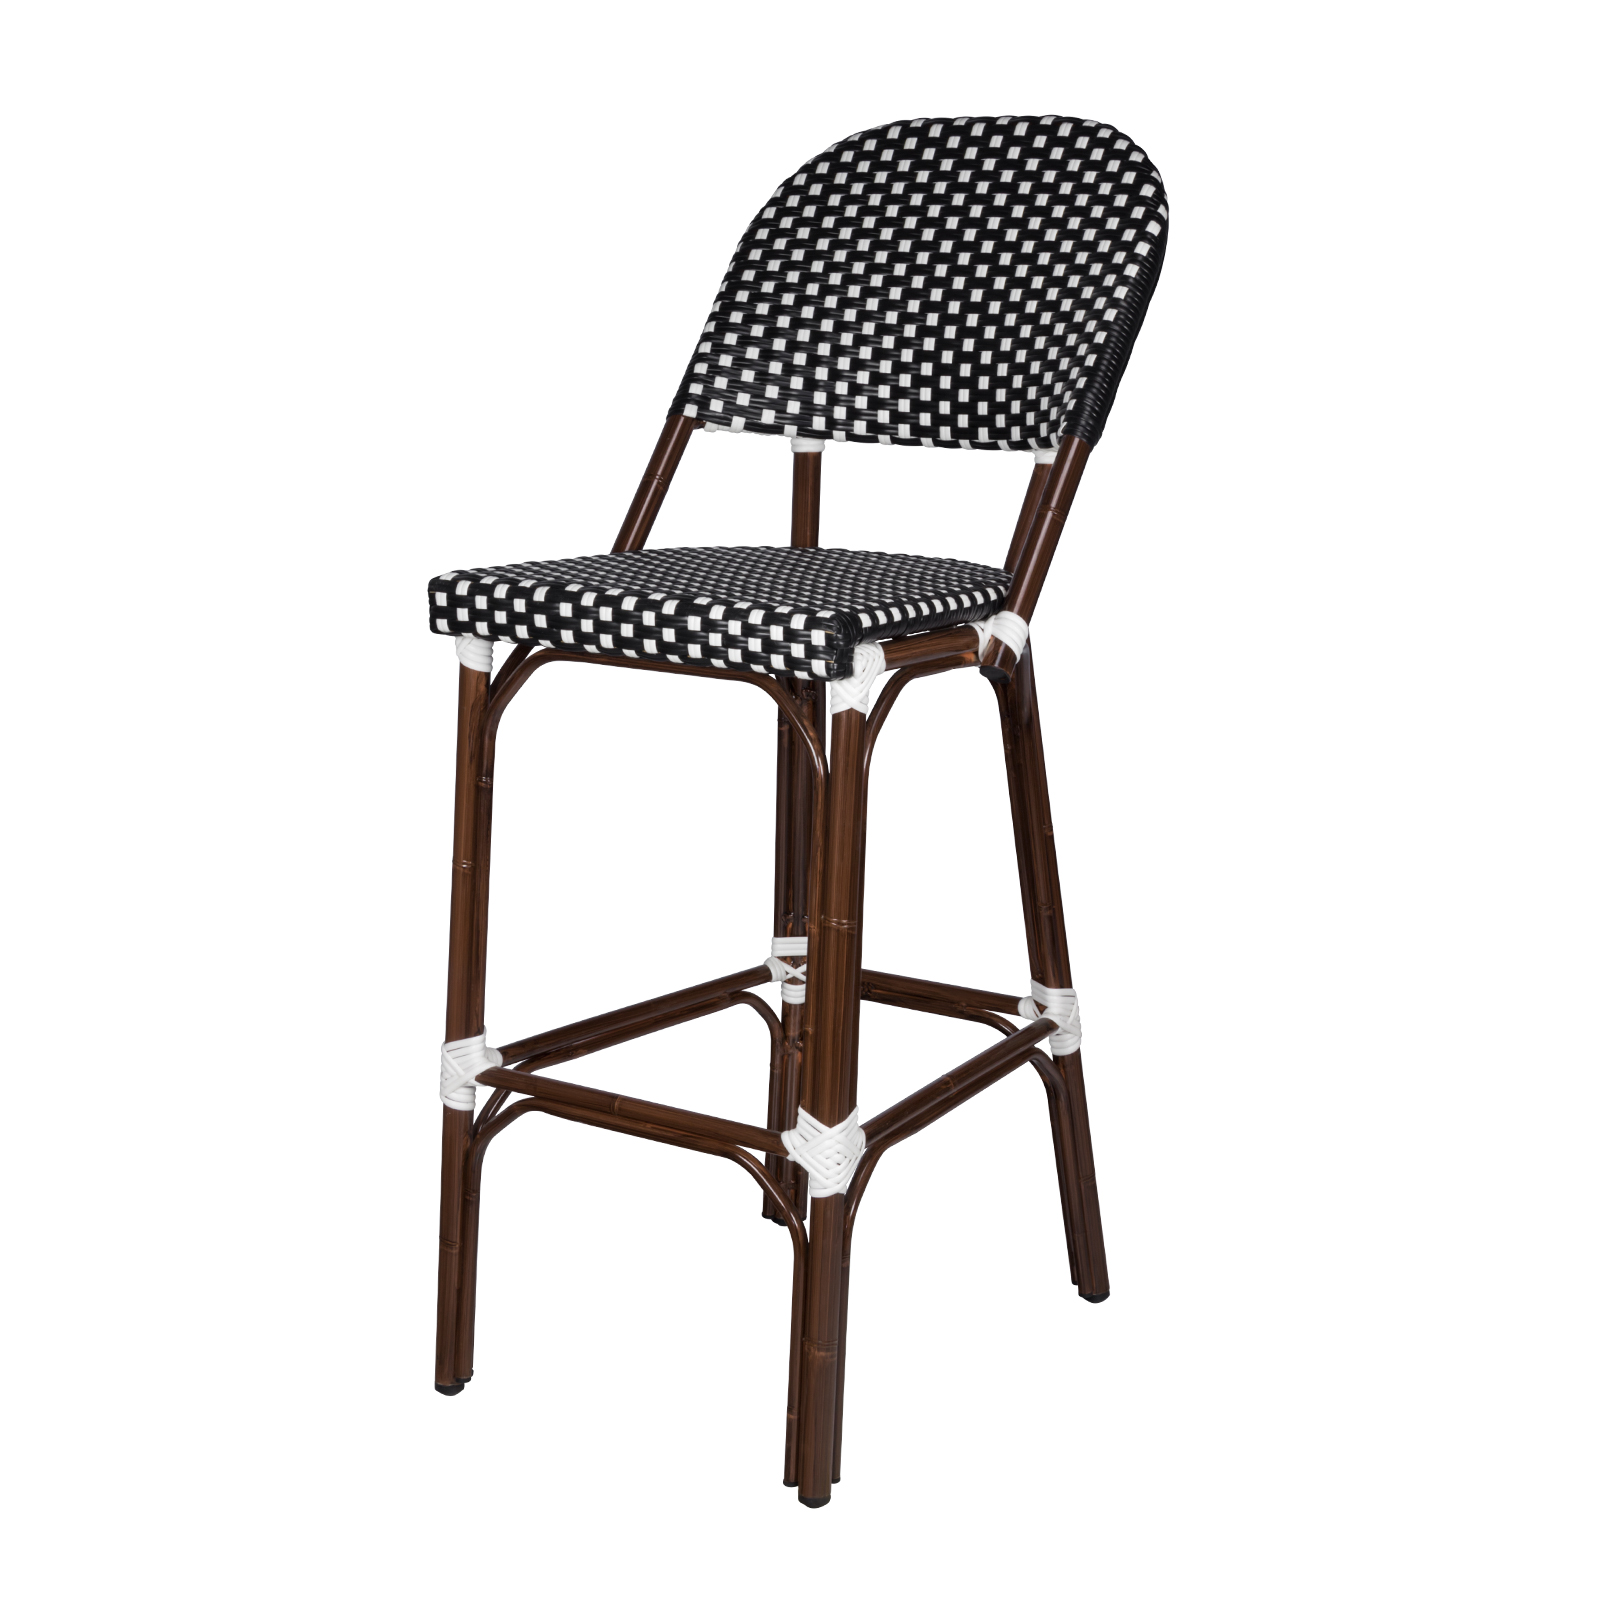 paris bistro chairs outdoor ez chair covers southern home bar stool black and white